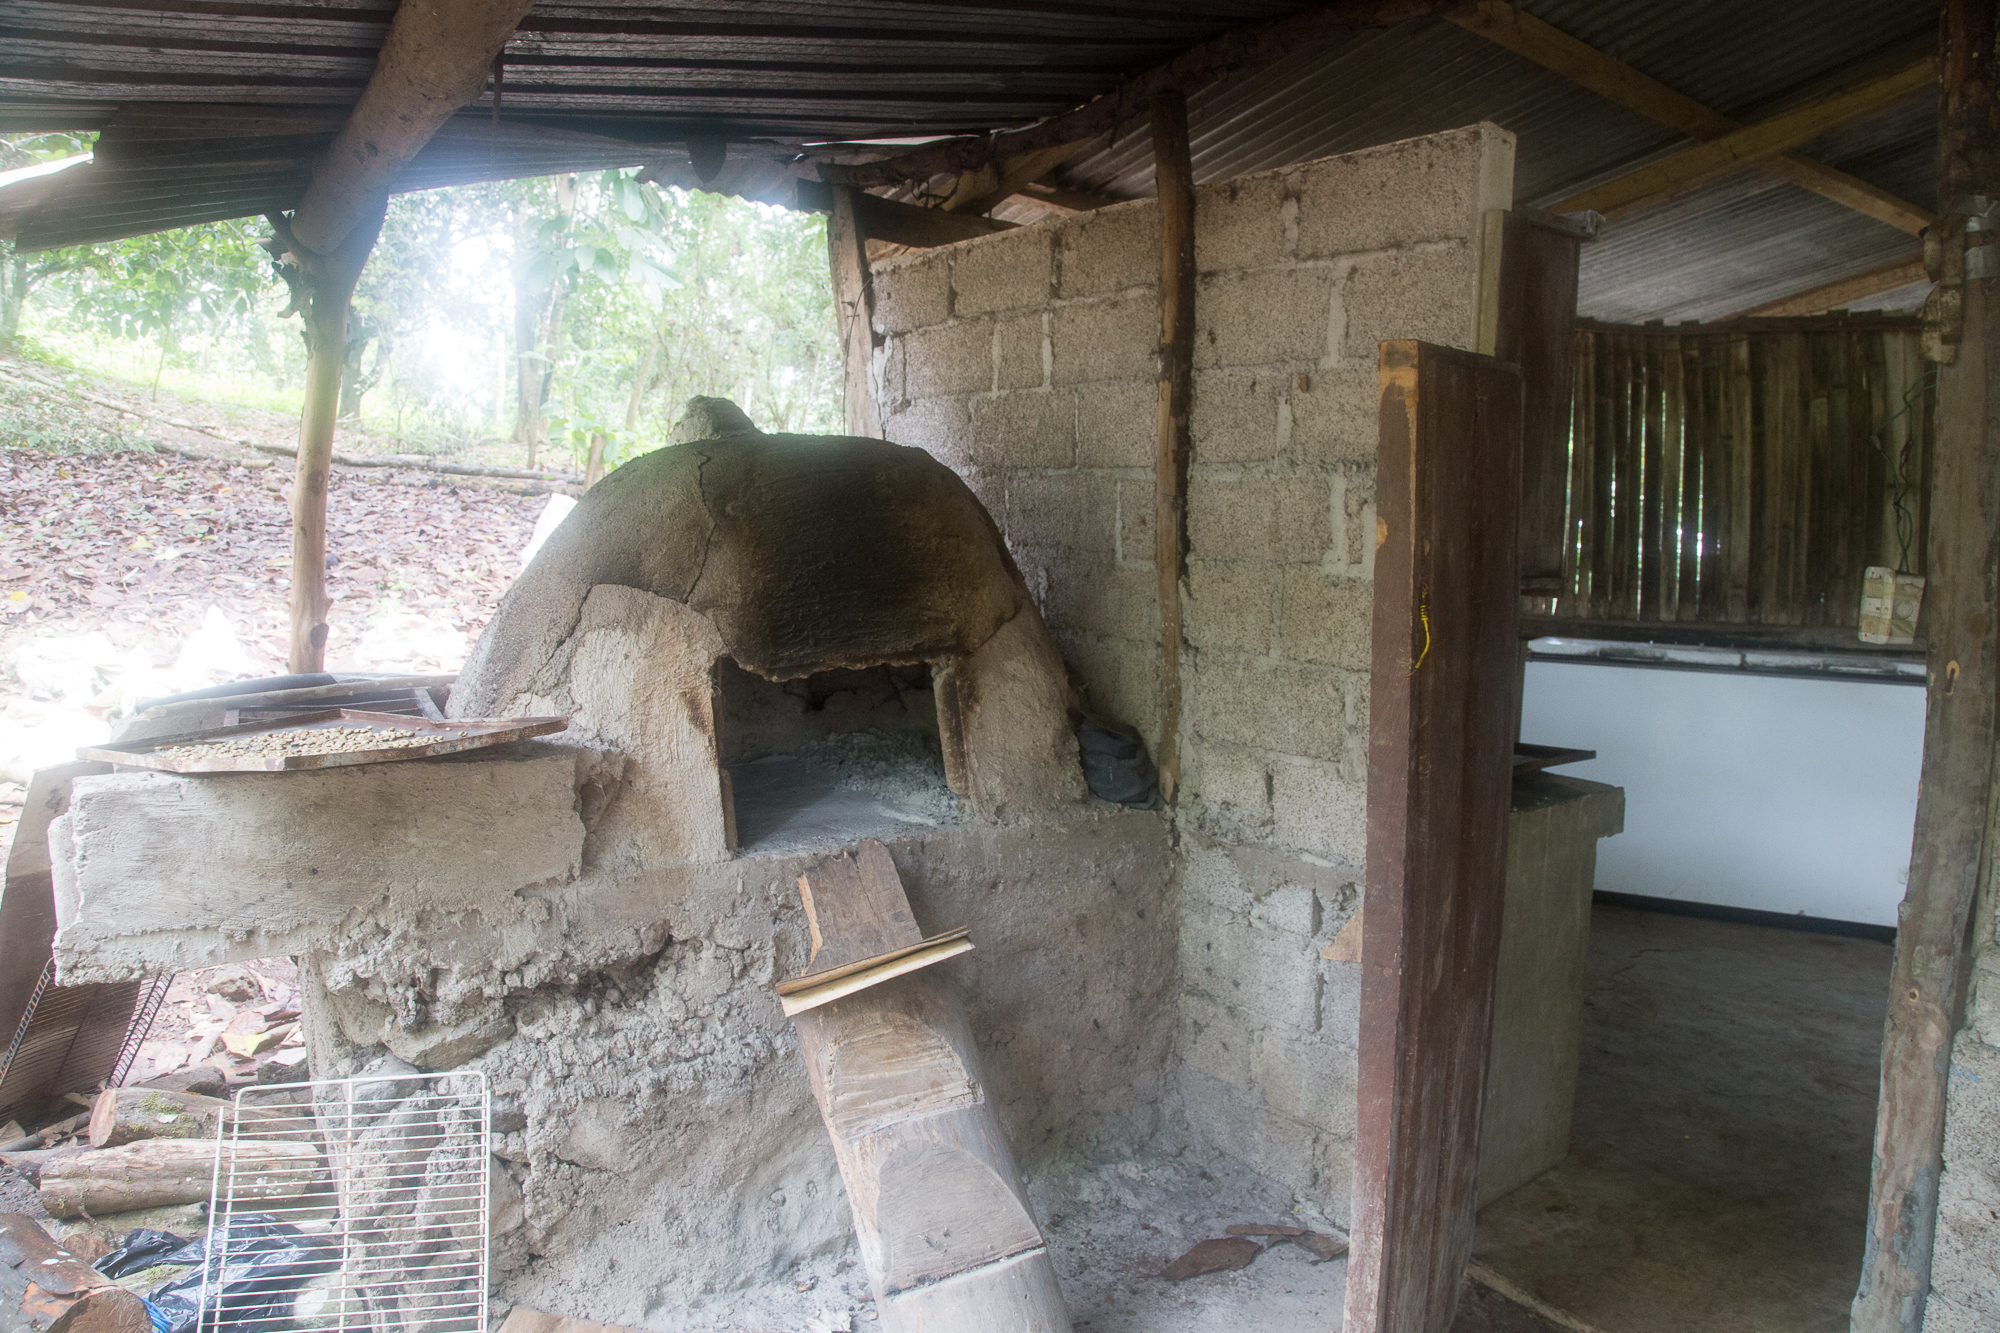 The oven out back.